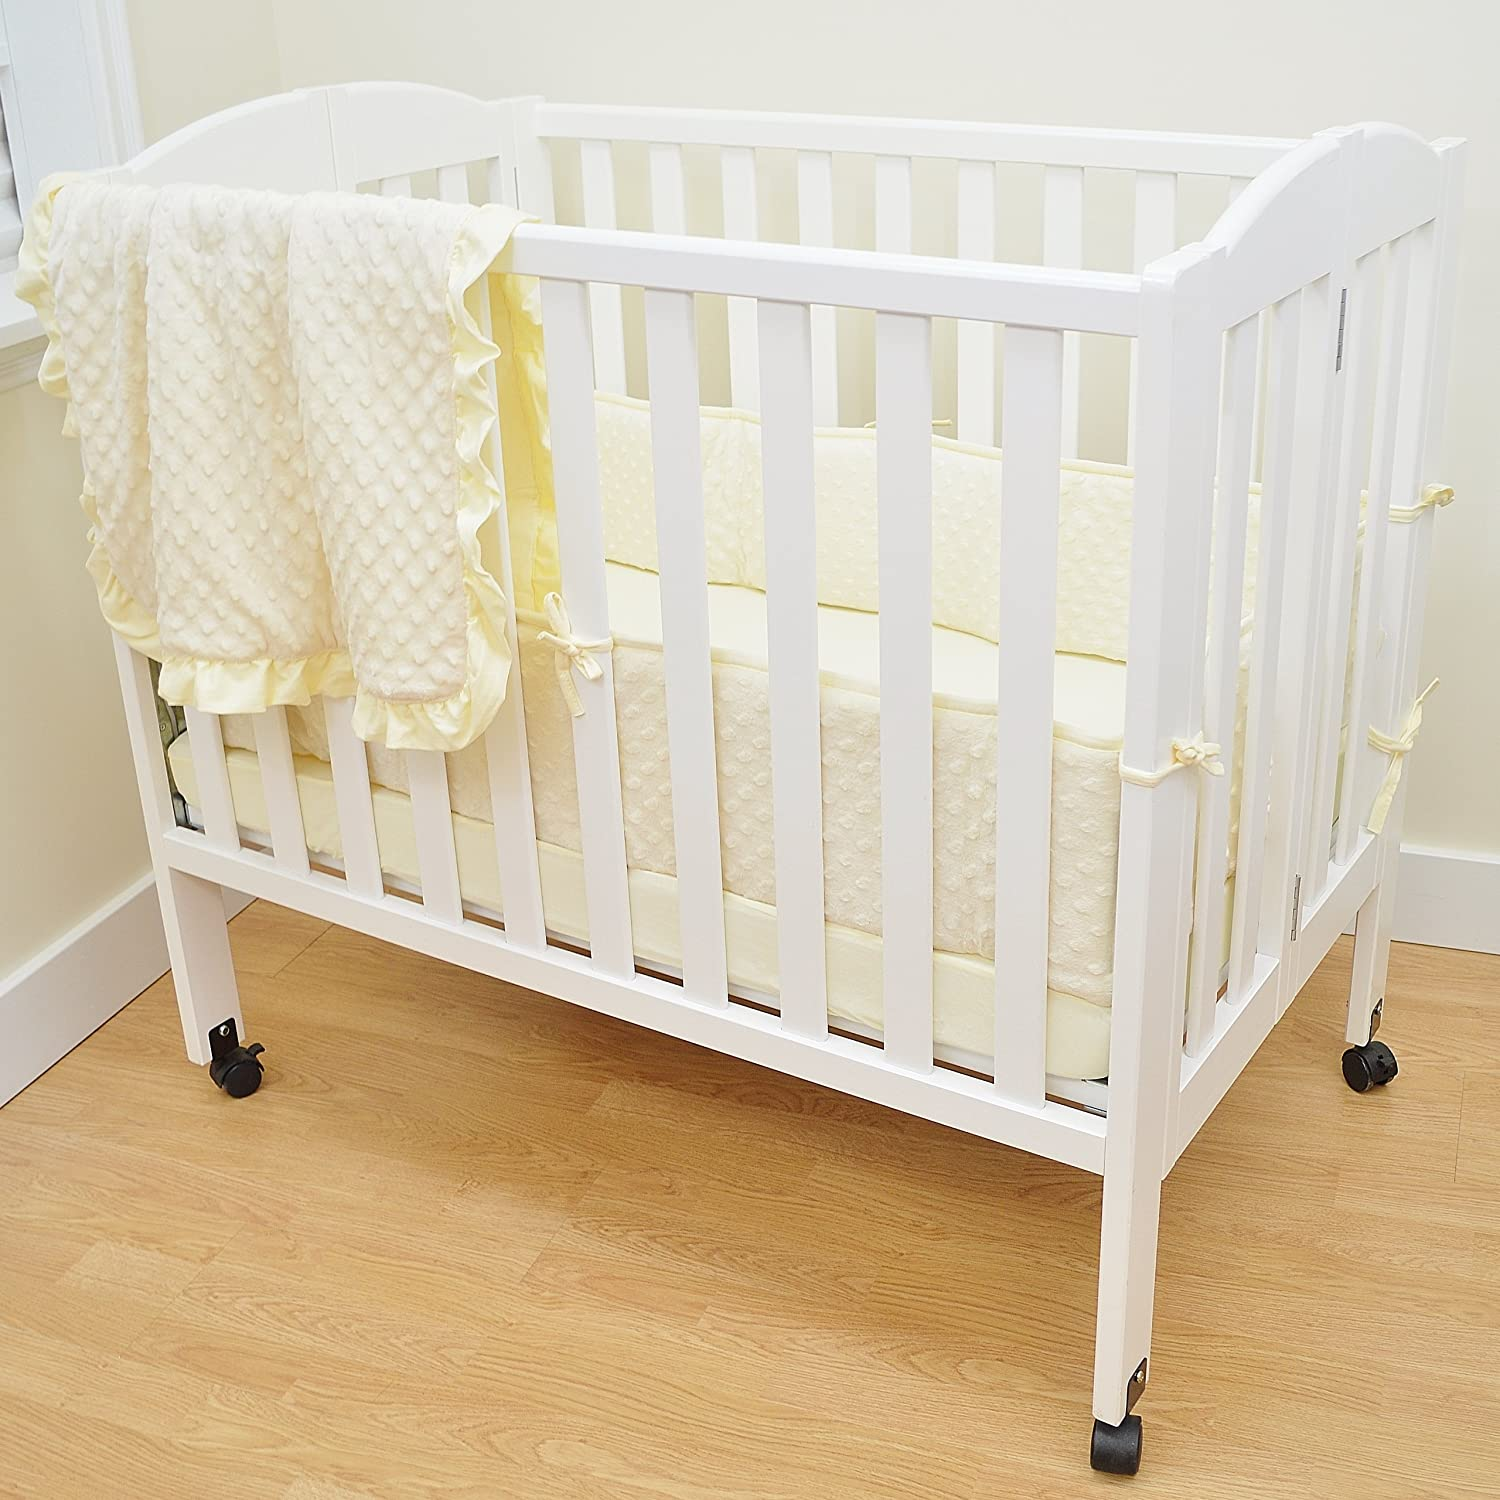 these hello space minicribs cribs crib mini best your small will bestof a cute frzqnc of fit stylish have nursery baby pin